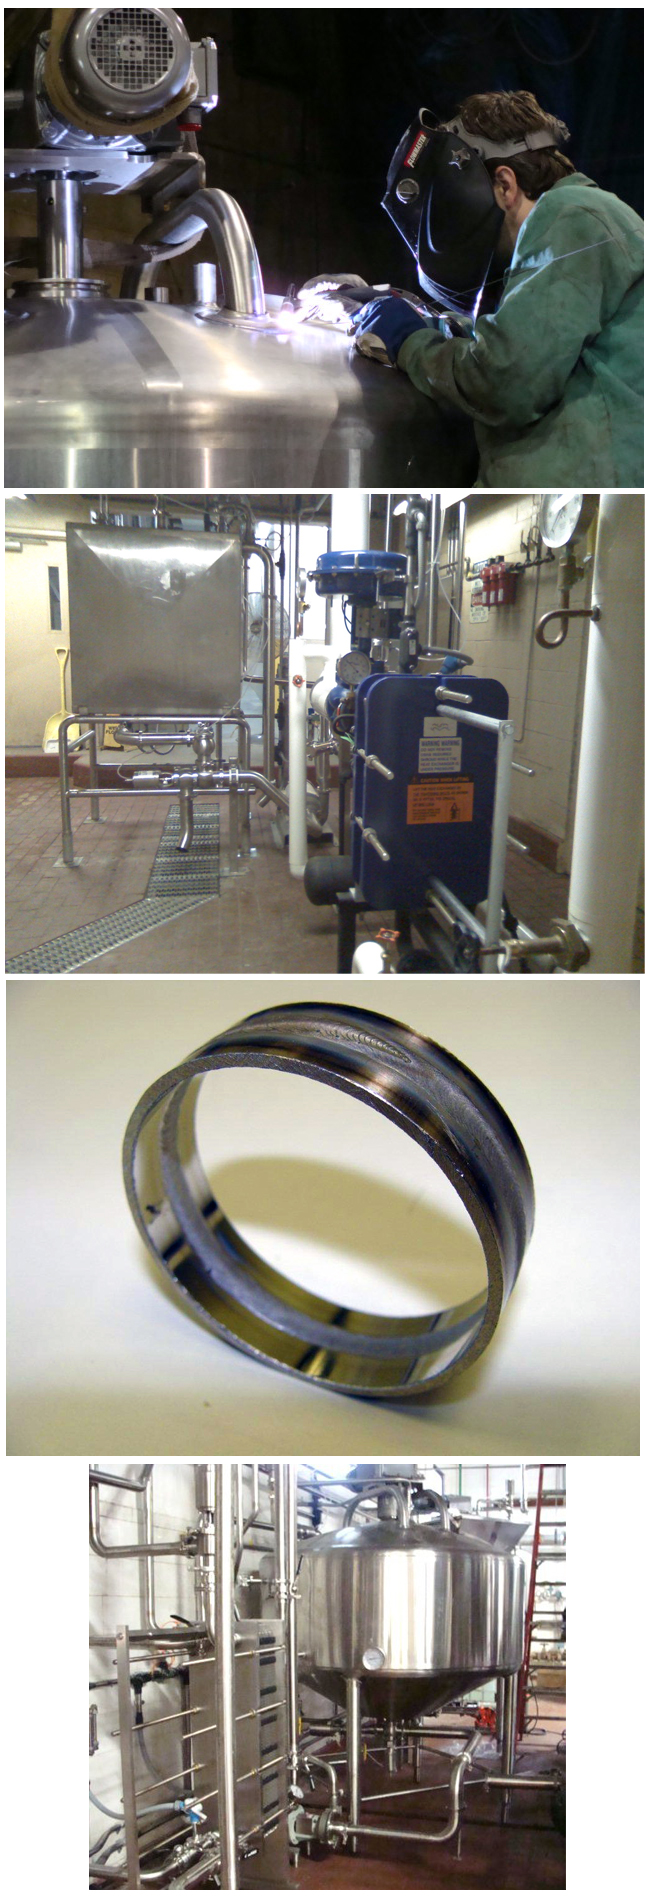 TPE-Townsend Process Piping and Engineering, Excels at Pharmaceutical, semiconductor and food grade sanitary process piping and systems. TPE offers experienced high end installations with engineering support and full GMP standards and practices for sanitary and high purity piping systems.